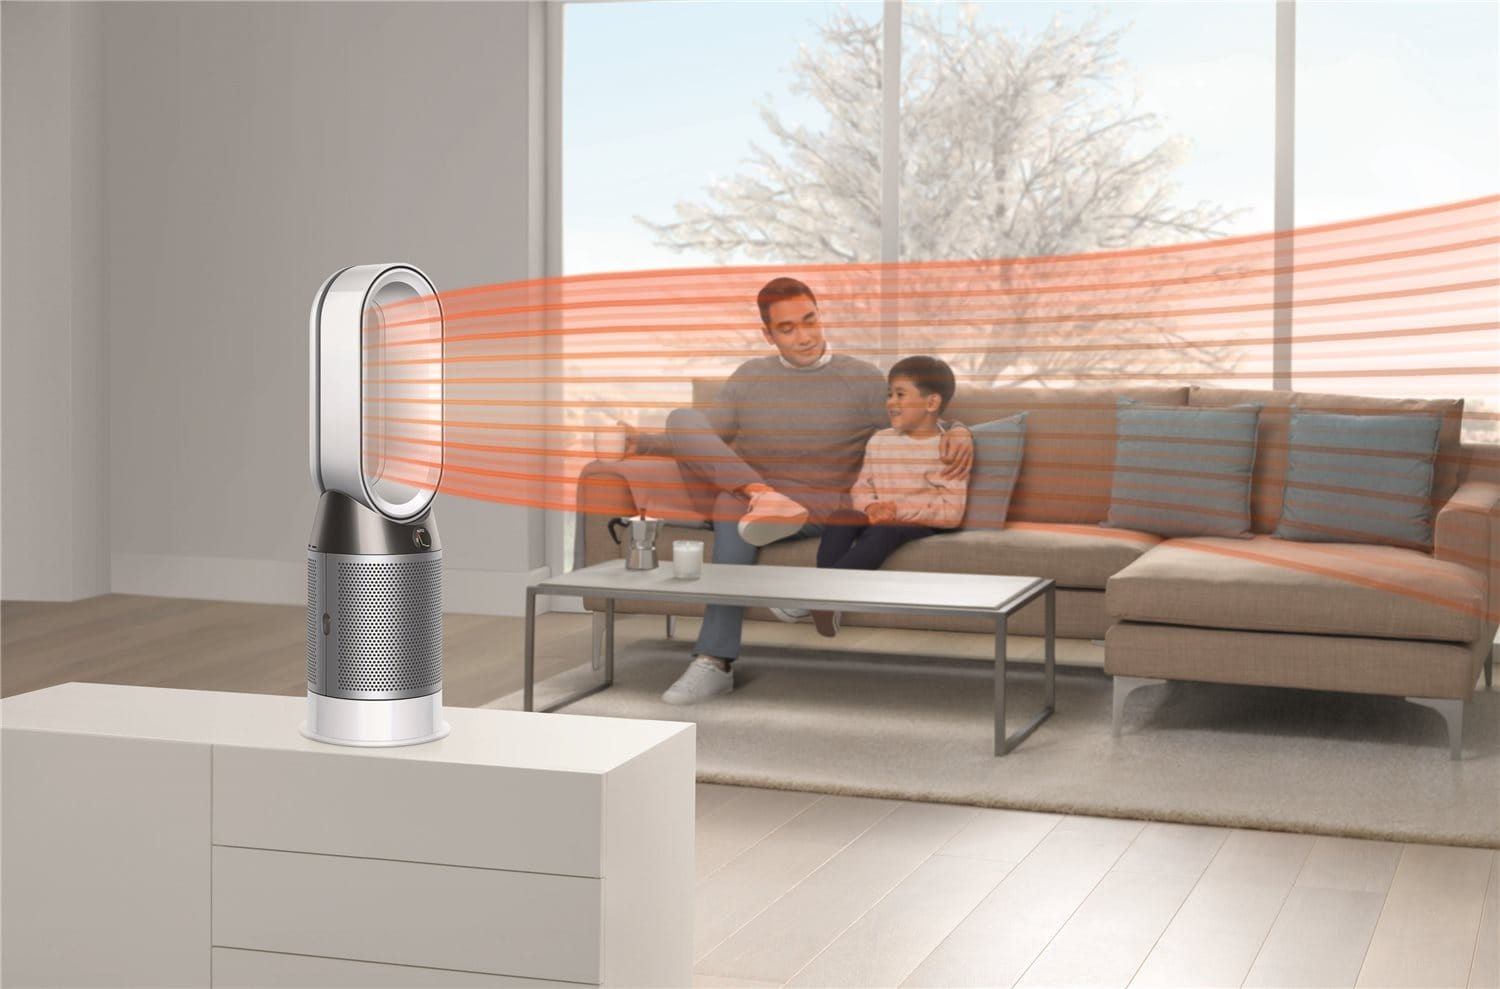 Dyson Pure Hot+Cool Purifying fan heater gets an upgrade